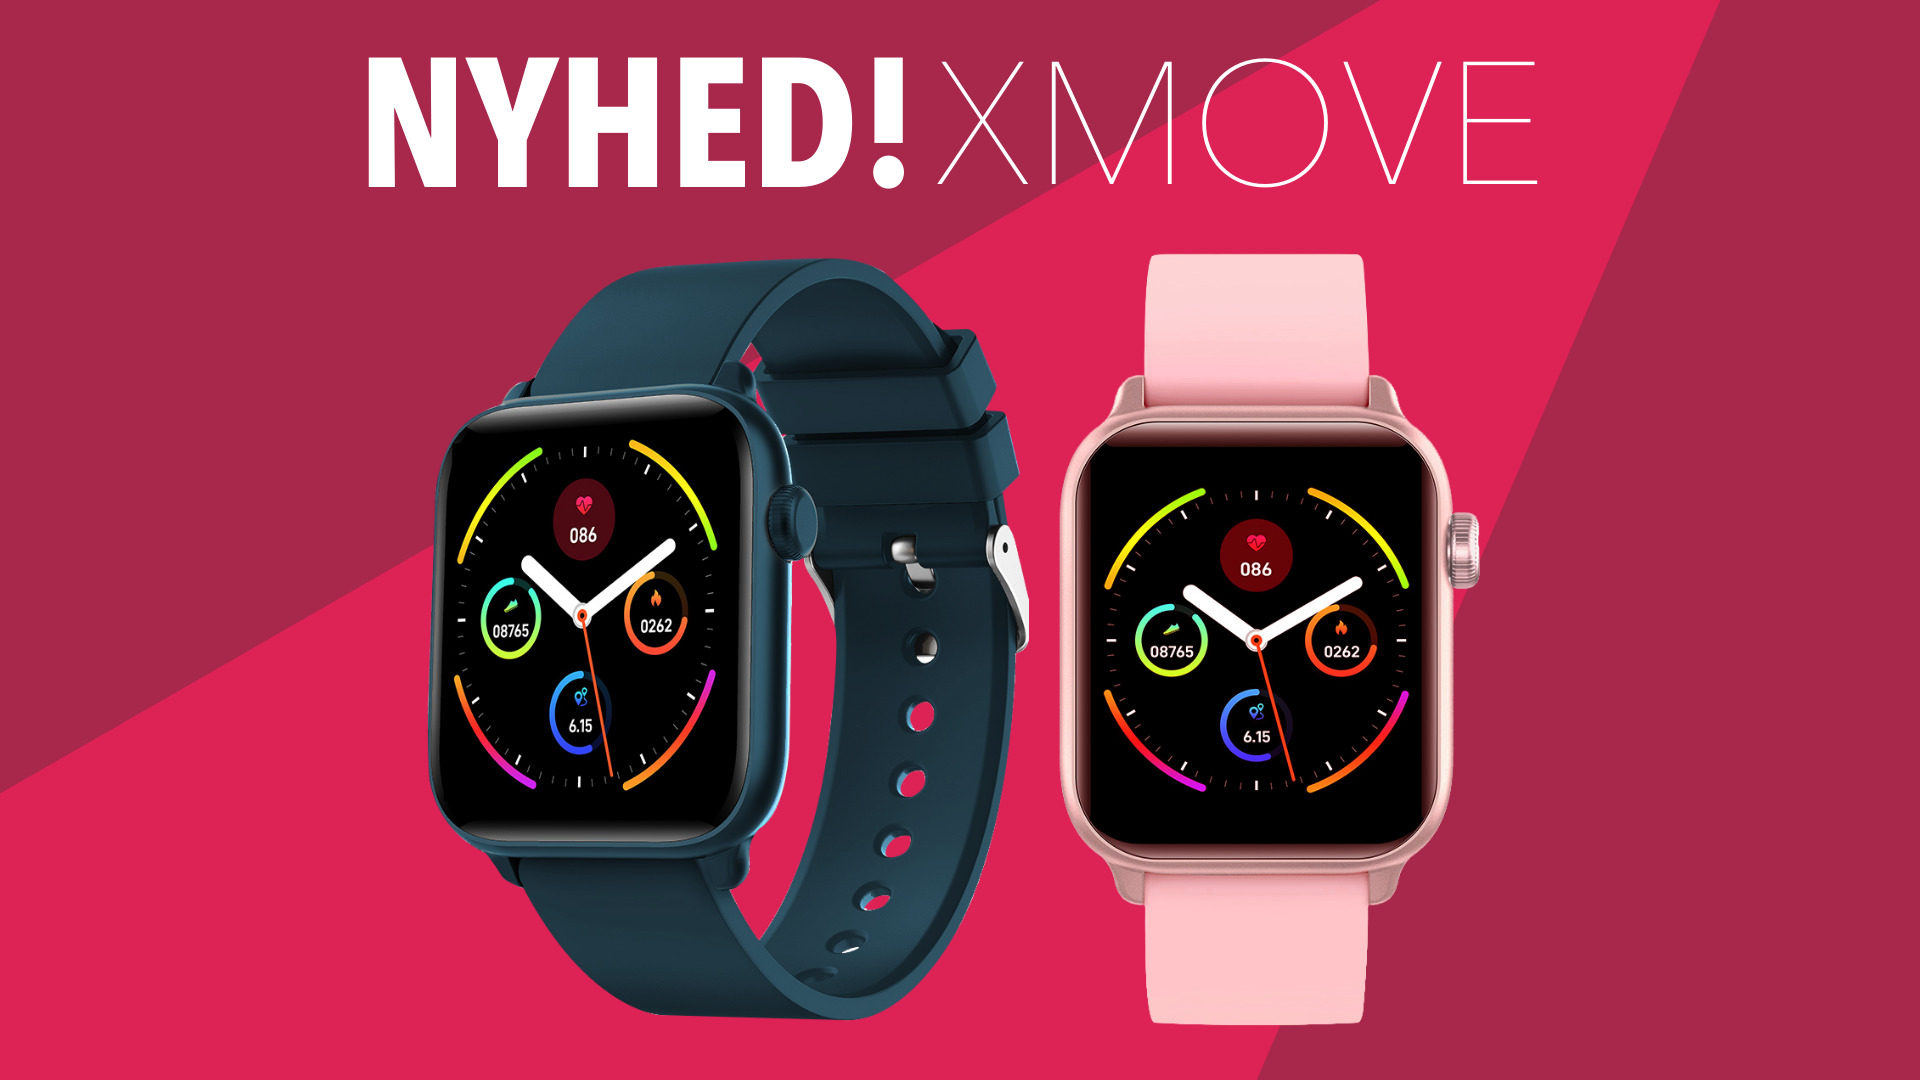 NYHED XMOVE